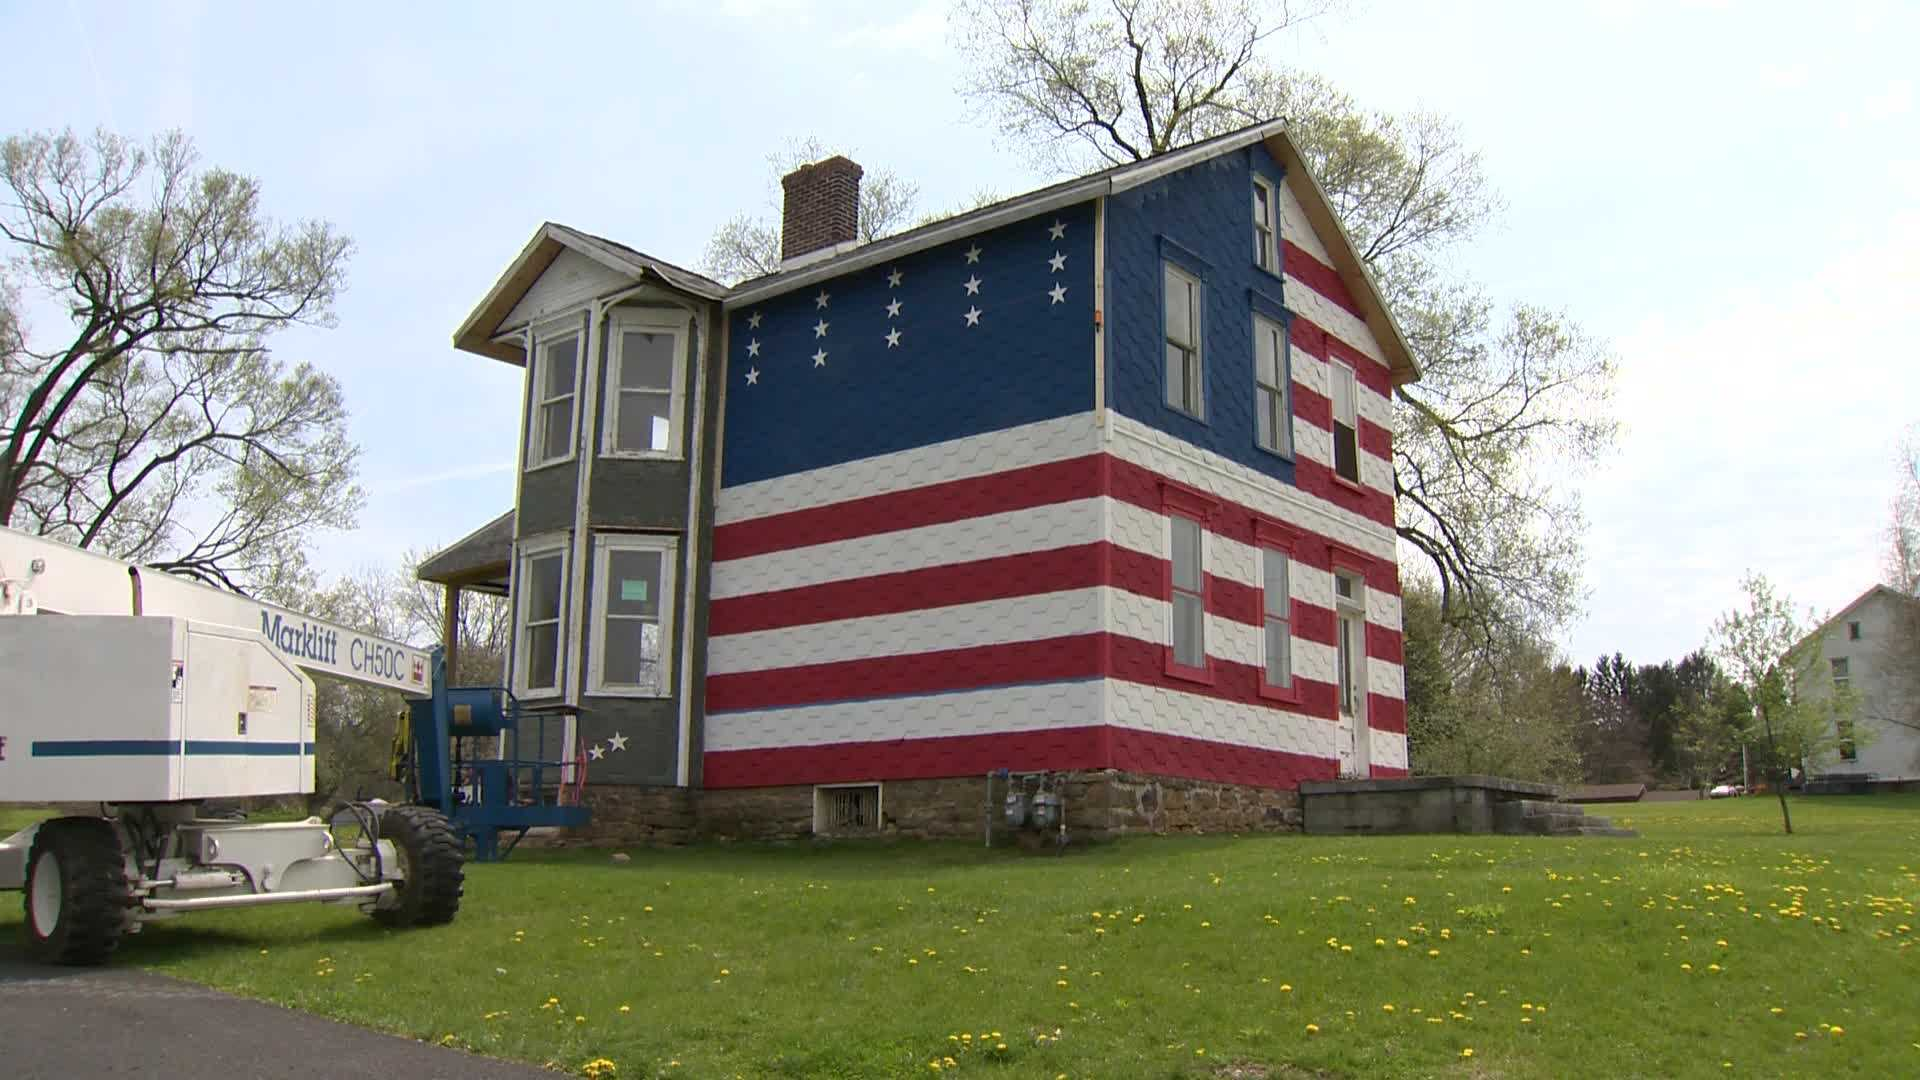 Trump house painted